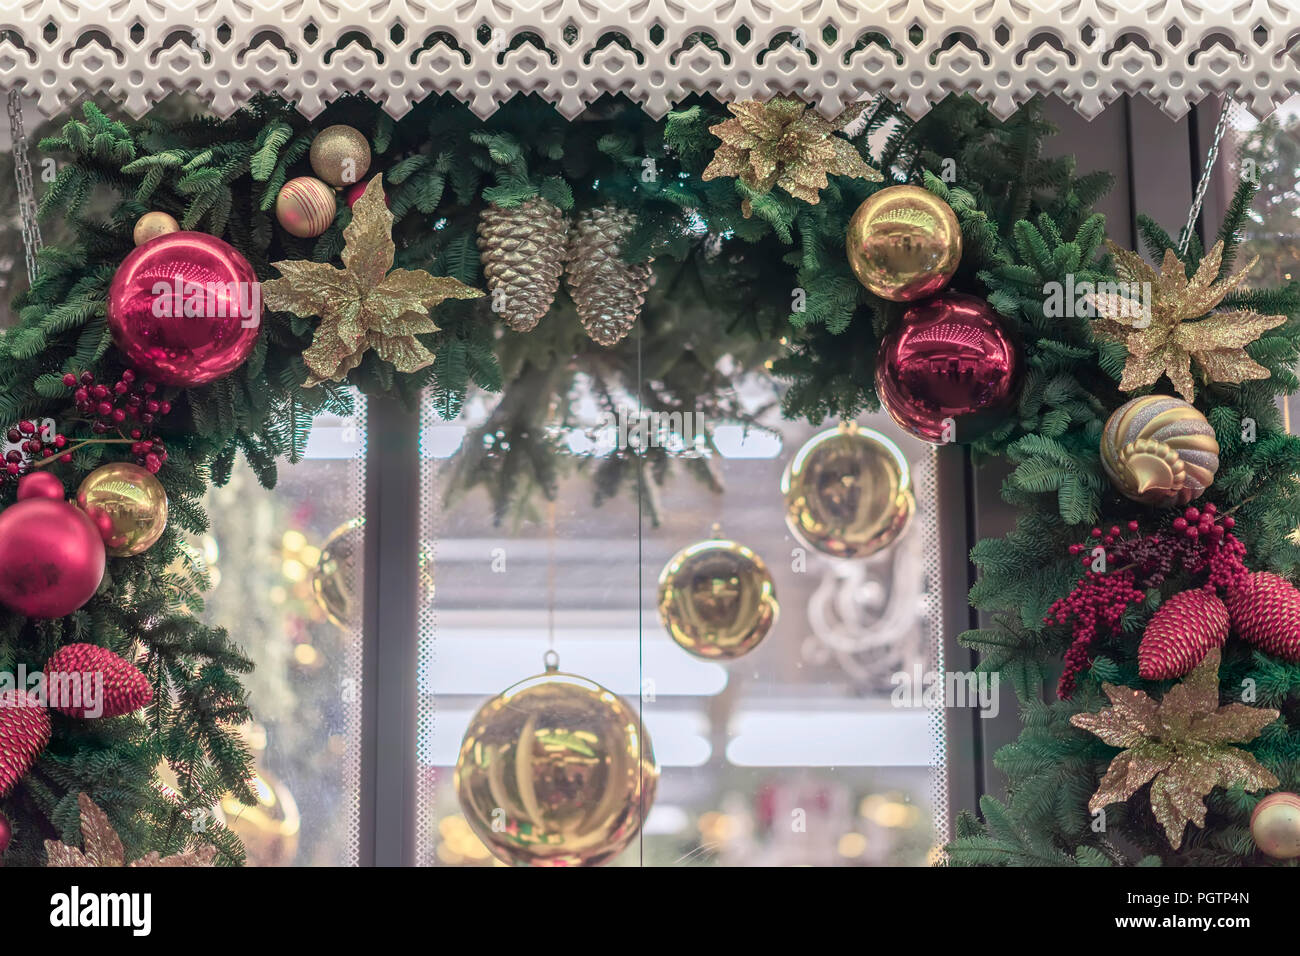 christmas garland a wreath close up around a window with shiny decorations balls cones berries festive background winter holiday happy new year xmas